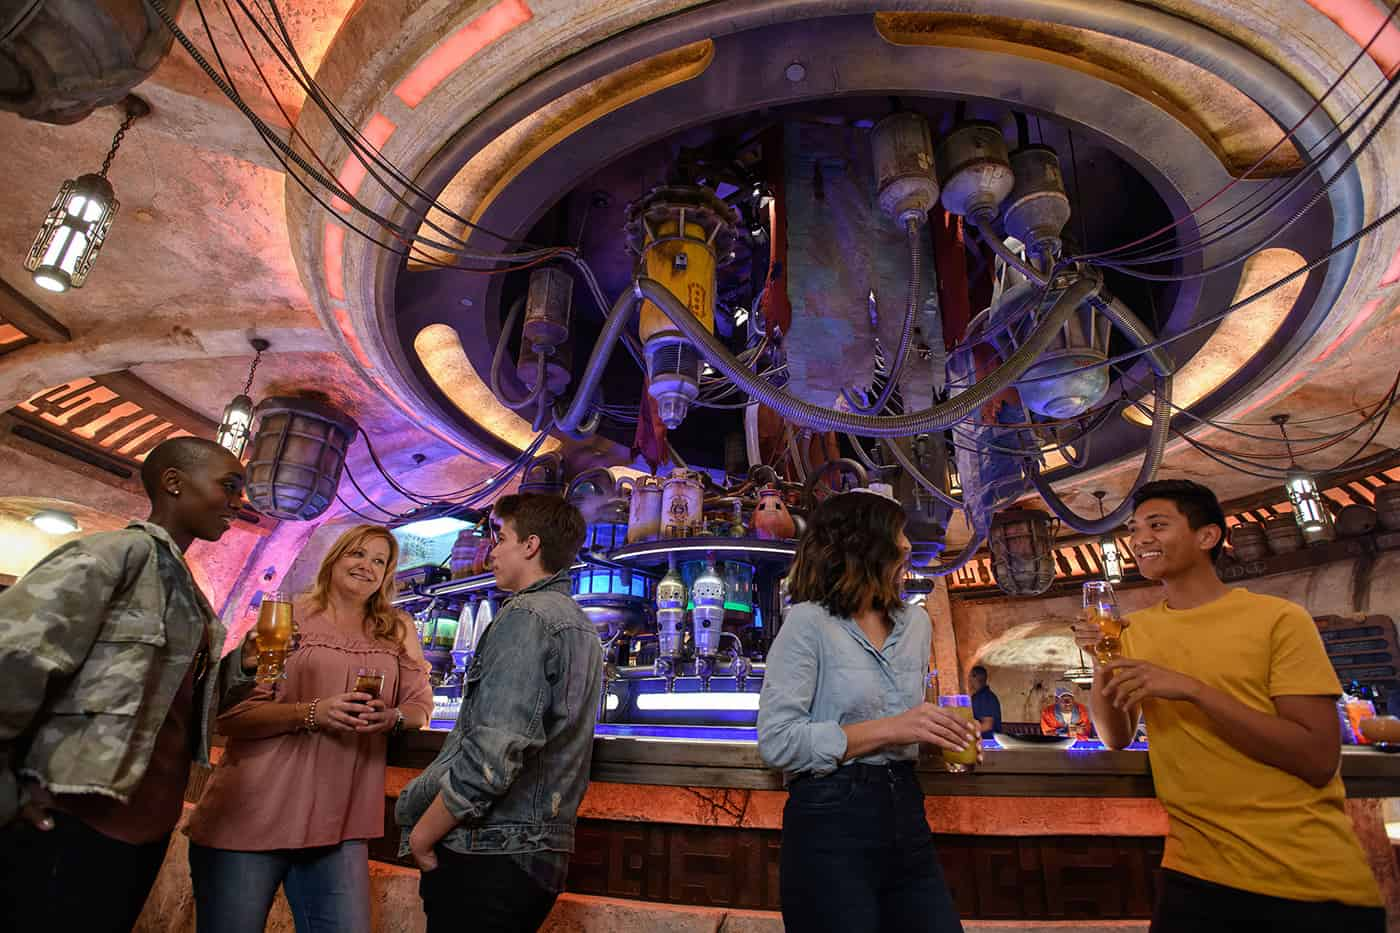 A few adults hanging out in Oga's Cantina in Star Wars Land